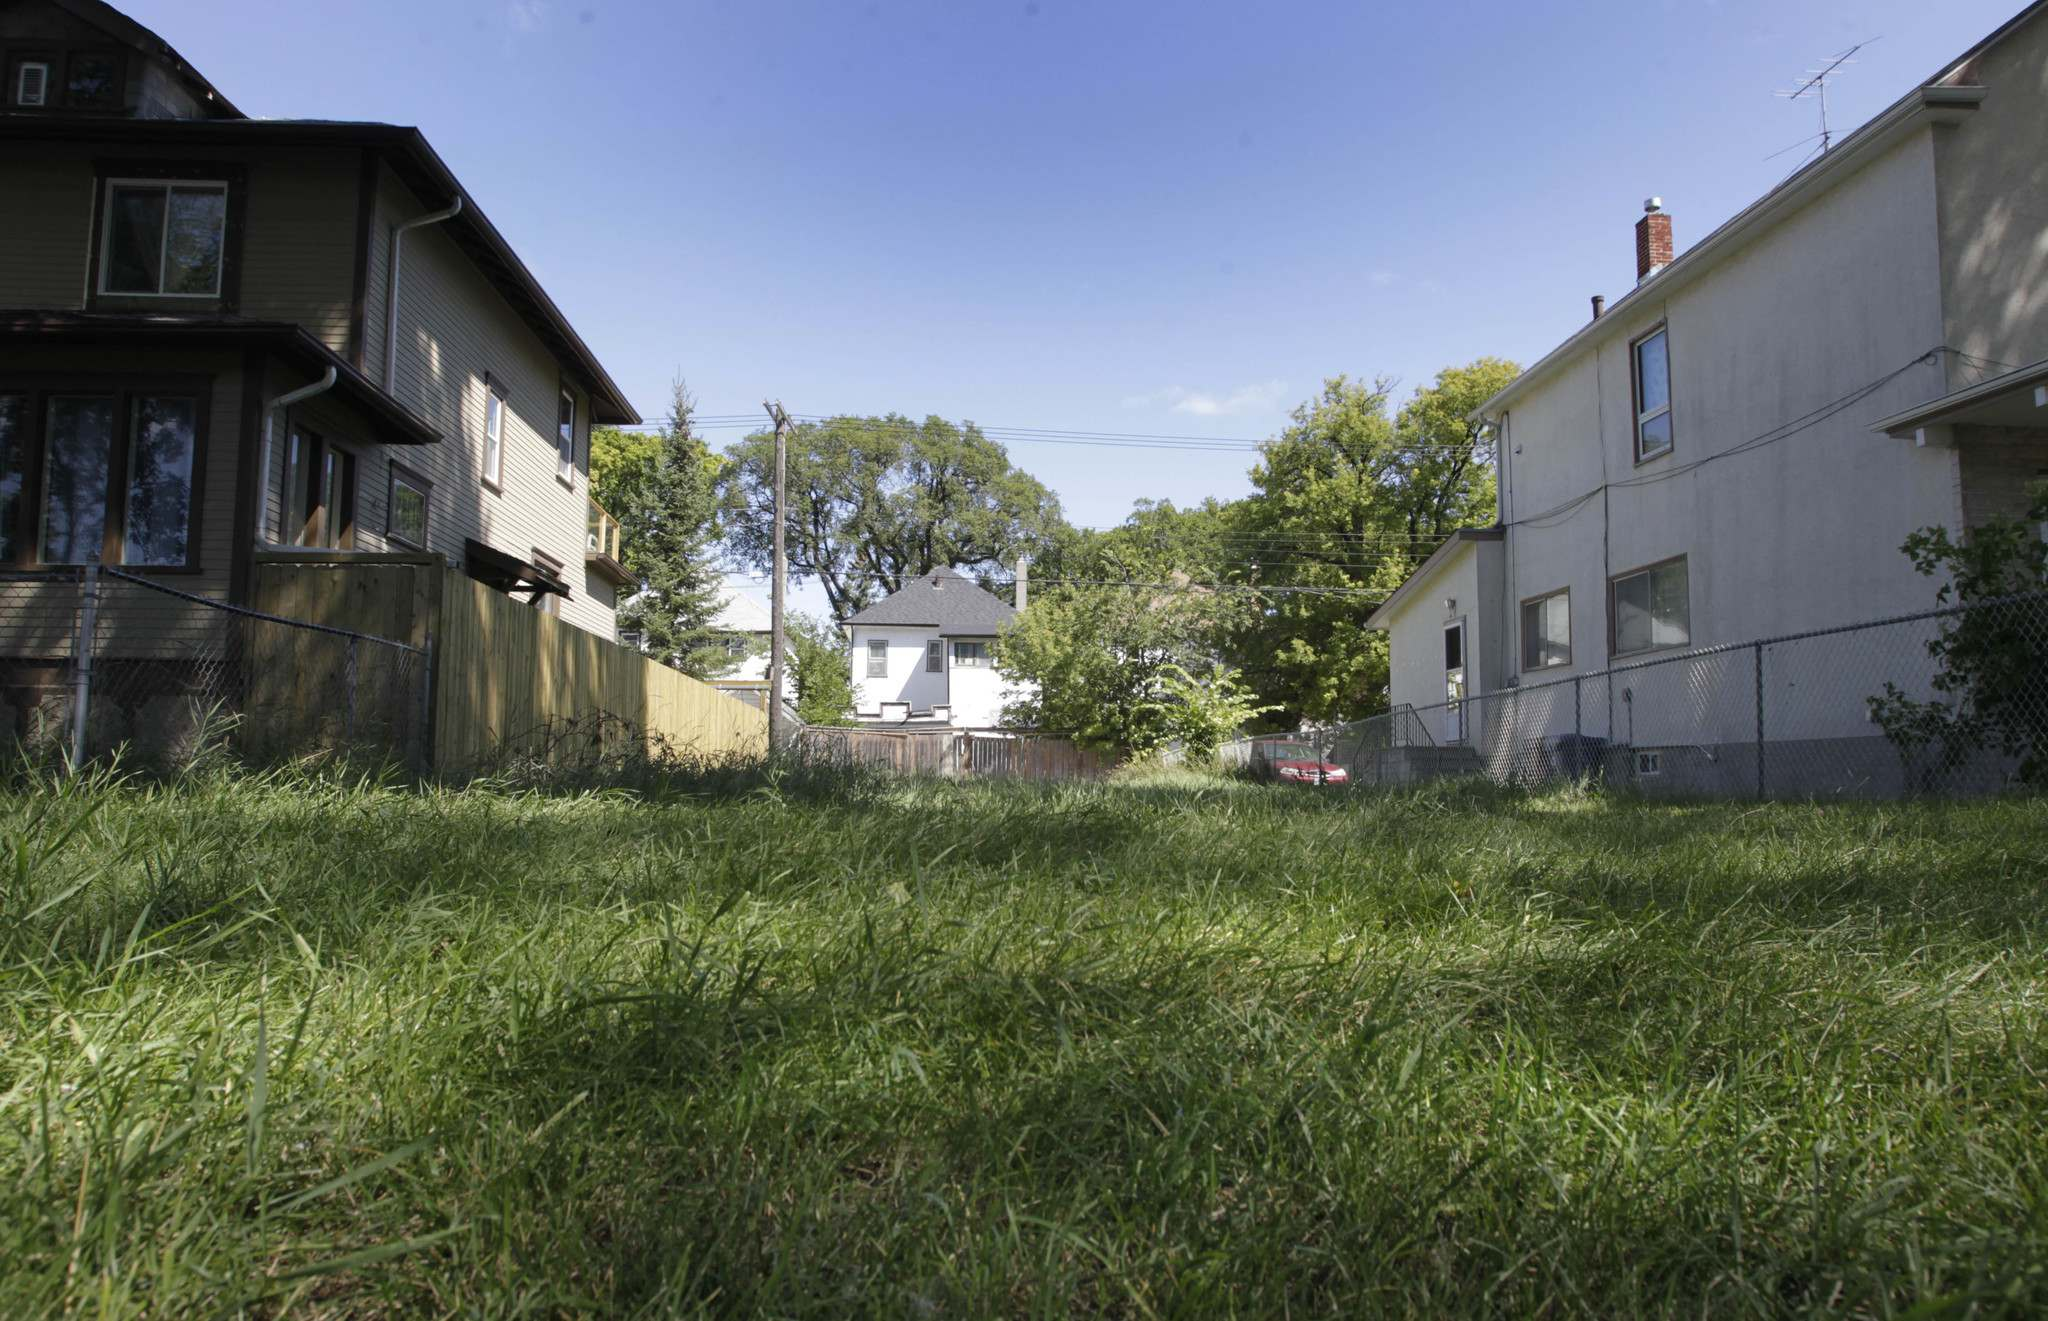 Many neighbourhoods across the city have older areas experiencing new development, either on vacant lots or by demolishing a smaller house and replacing it with a larger one or two structures. (Wayne Glowacki / Winnipeg Free Press files)</p>